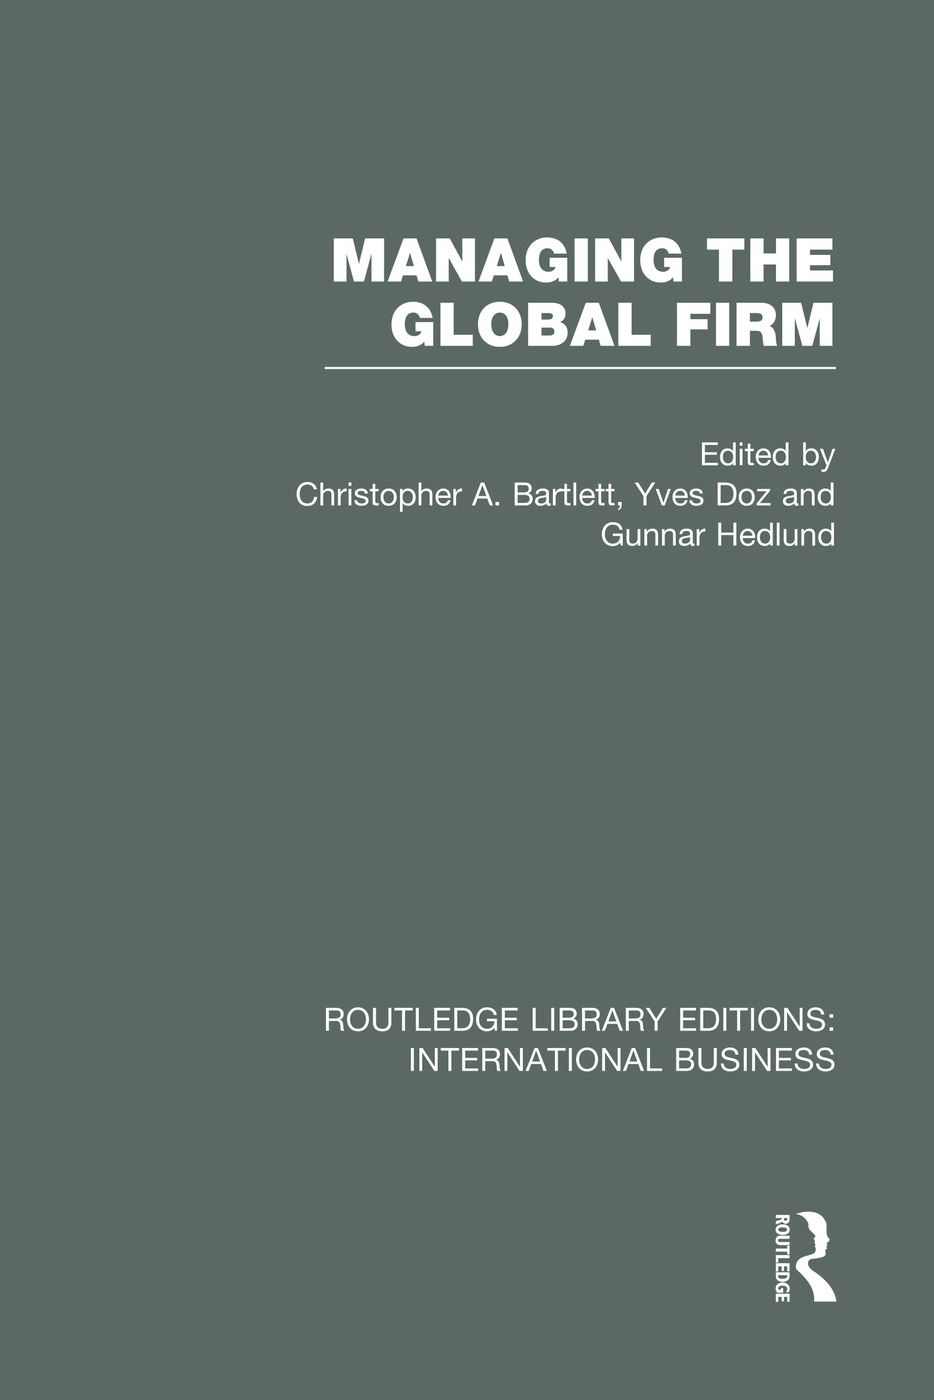 Managing the Global Firm (RLE International Business) book cover